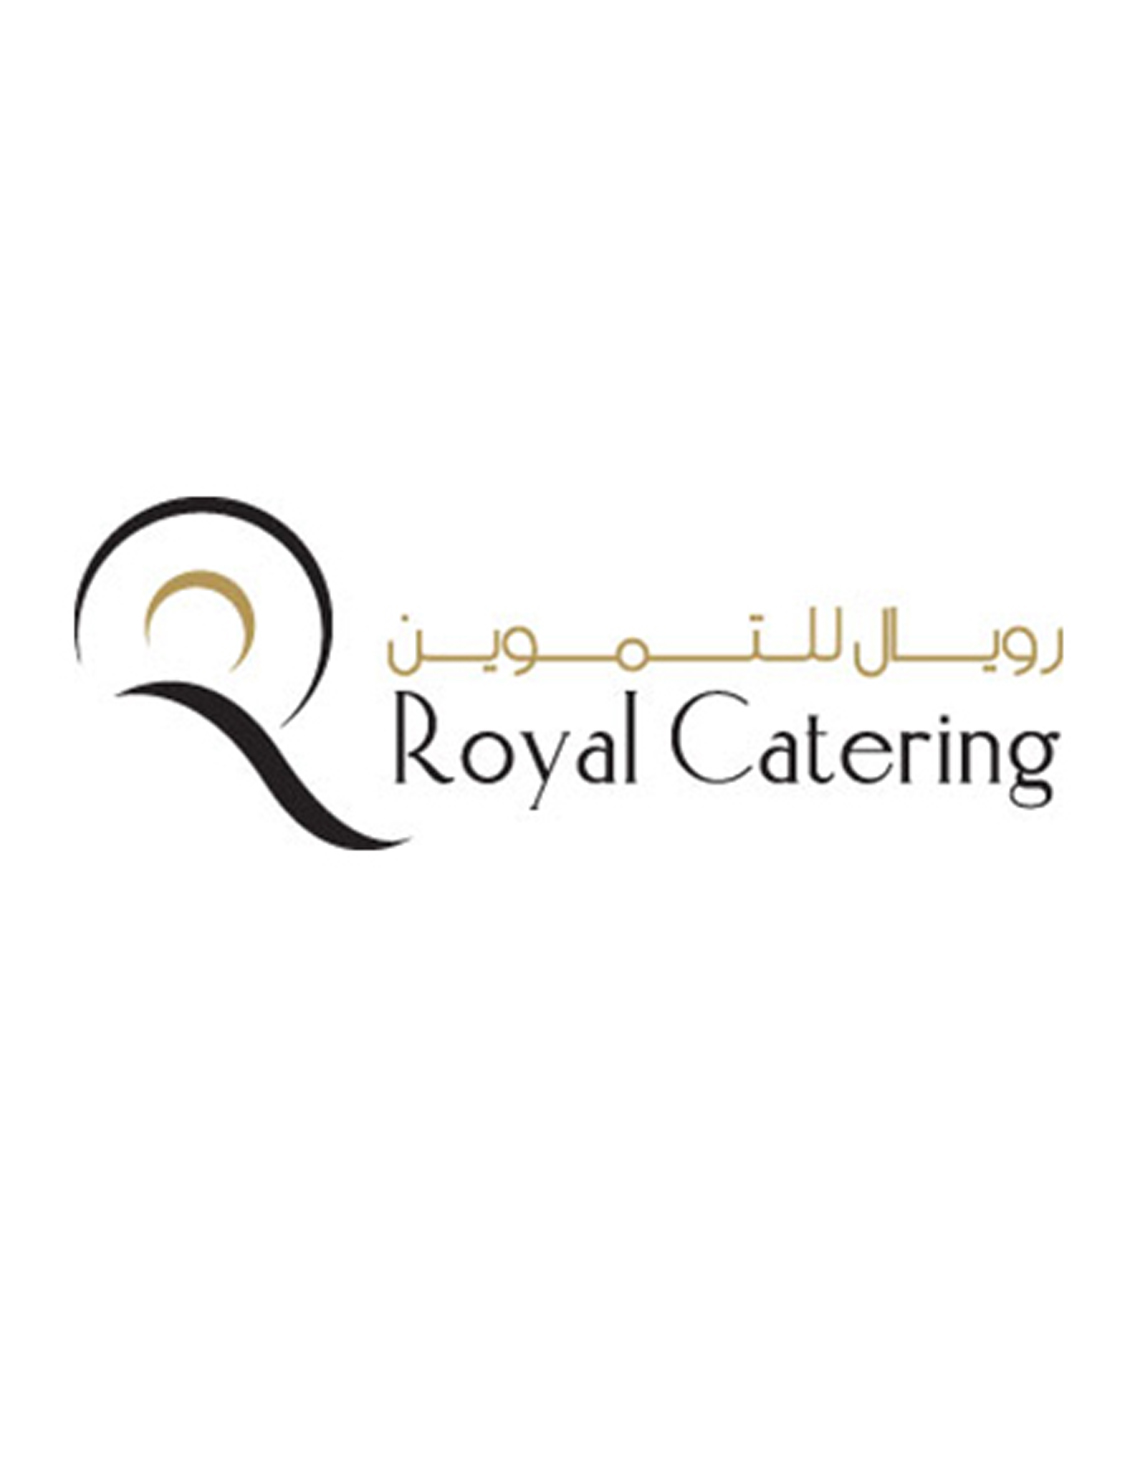 Royal-Catering